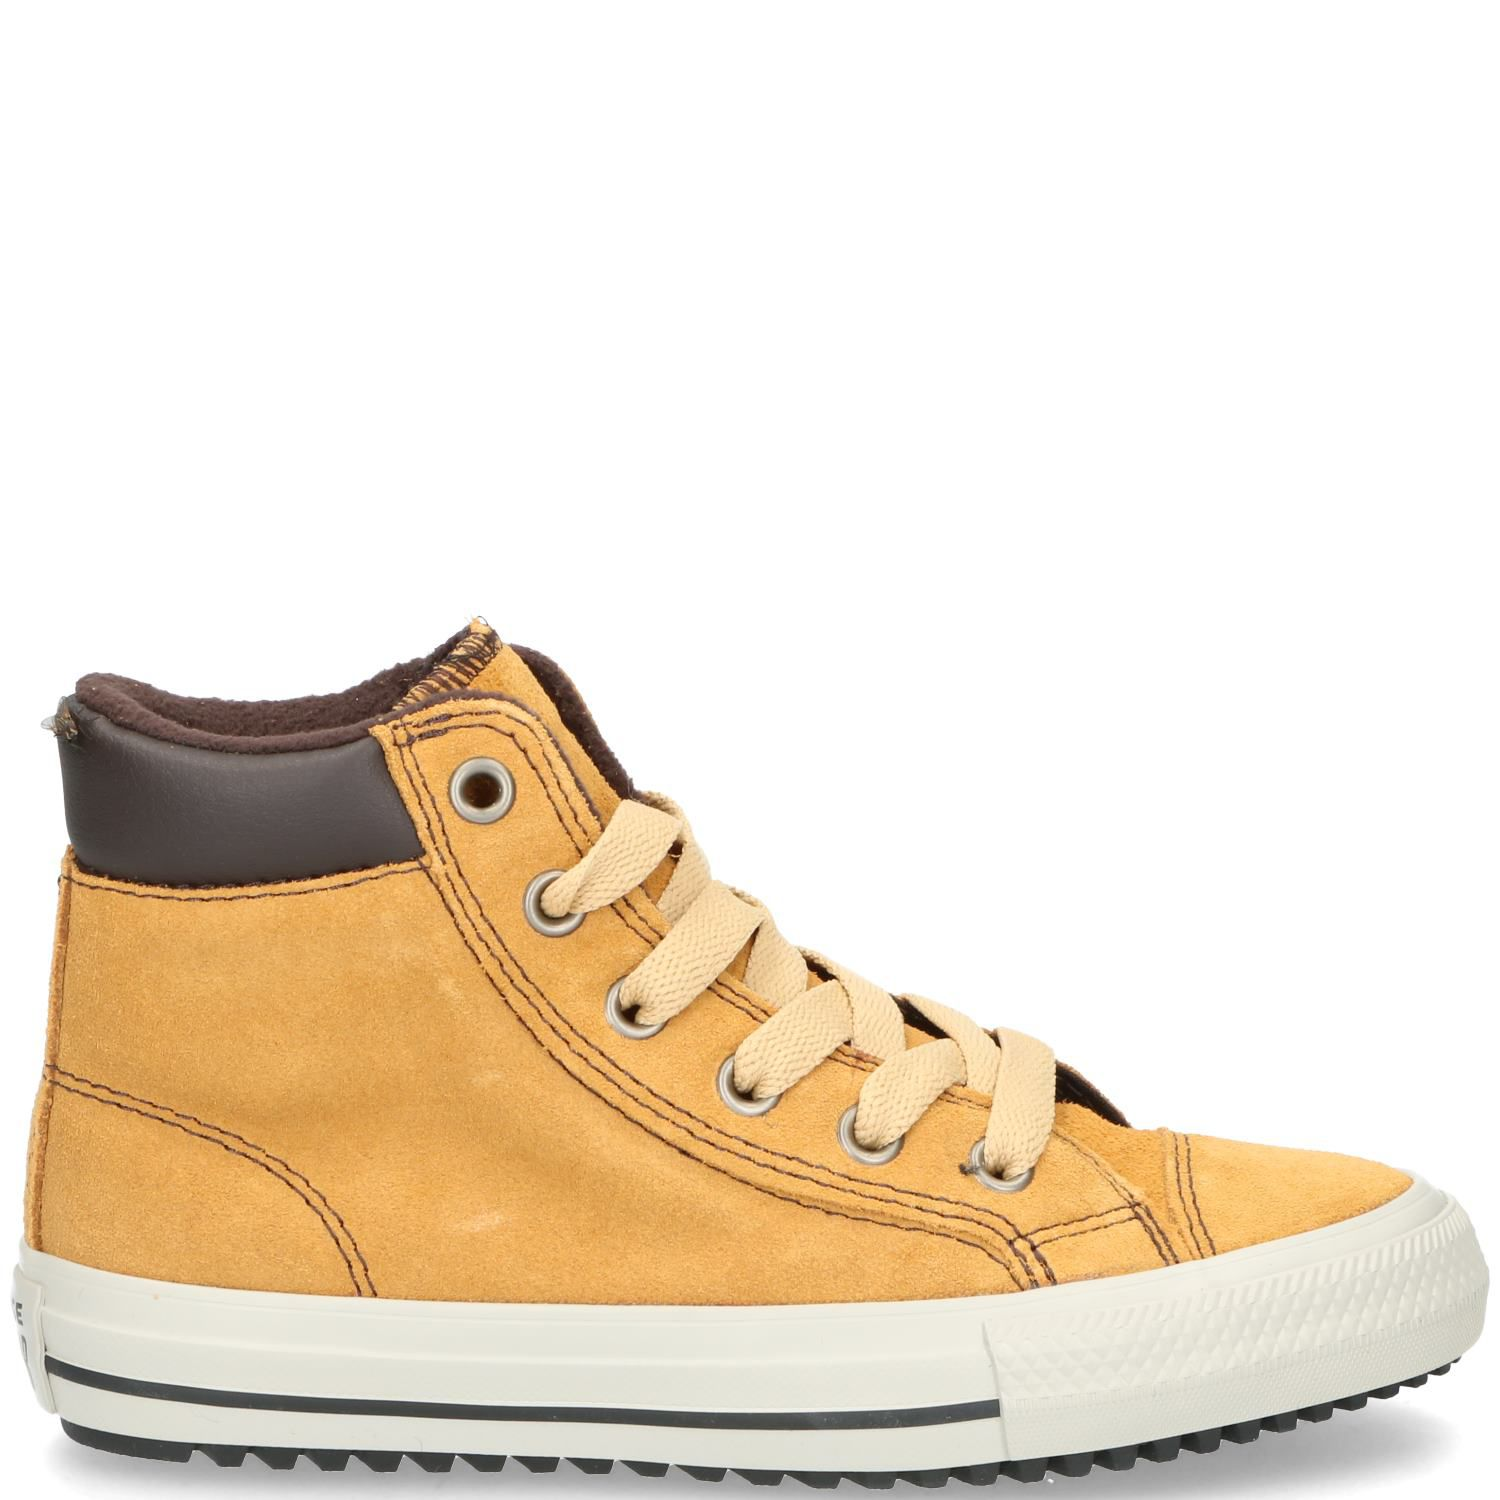 Converse All Star veterboot